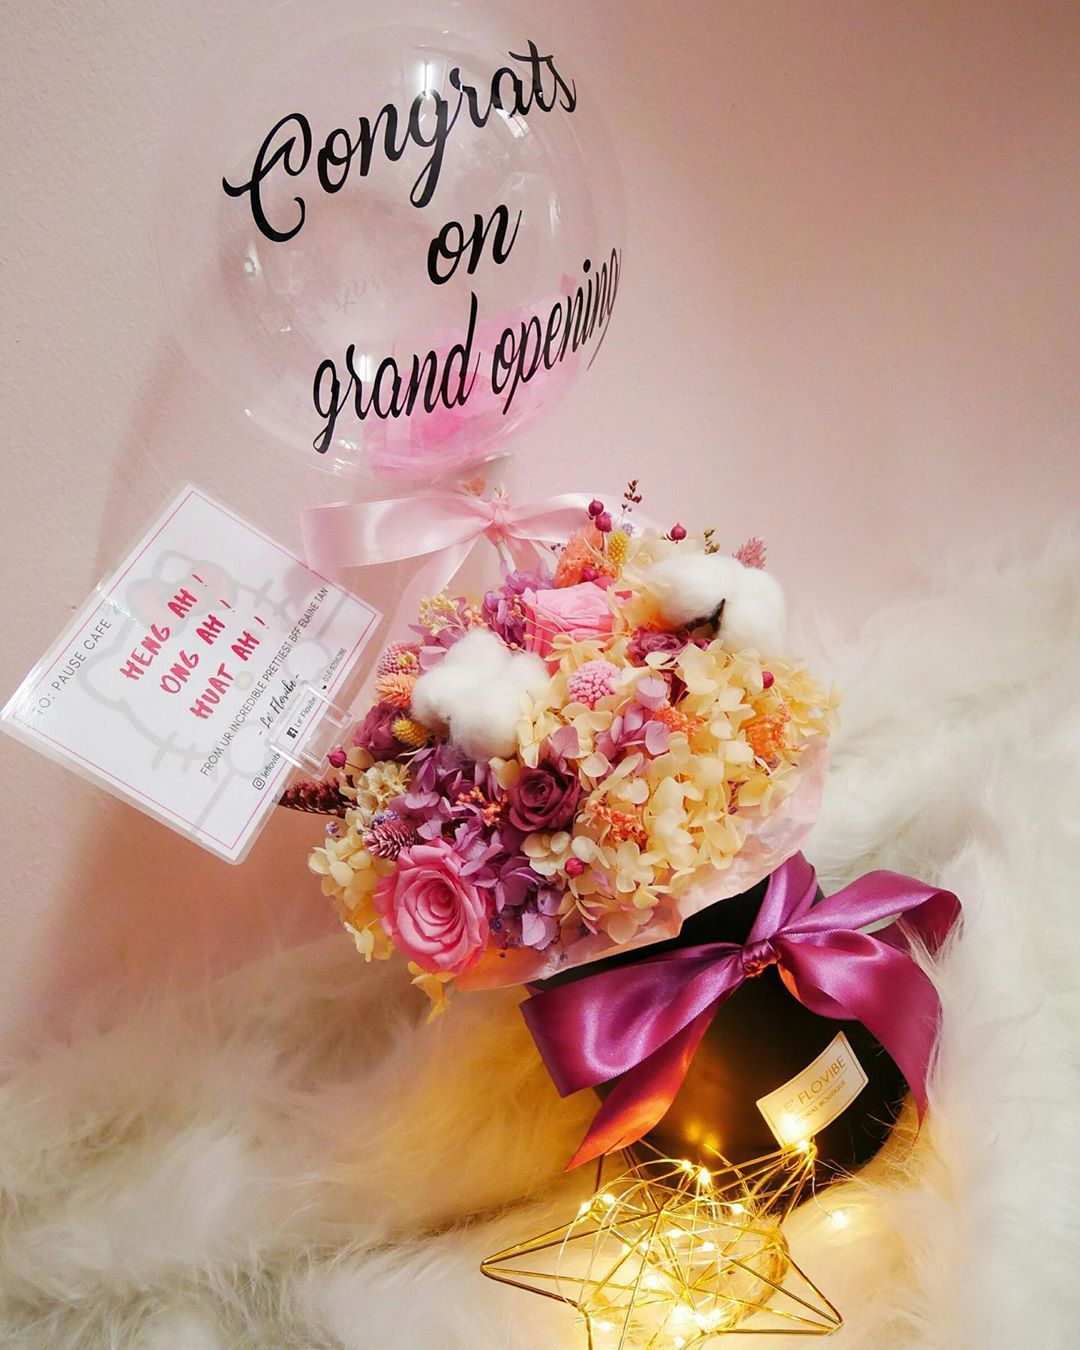 Grand Opening Preserved Flower Box May Our Wishes Brighten Up Your Day And Your Business Leflovibe How To Preserve Flowers Flower Boxes Grand Opening